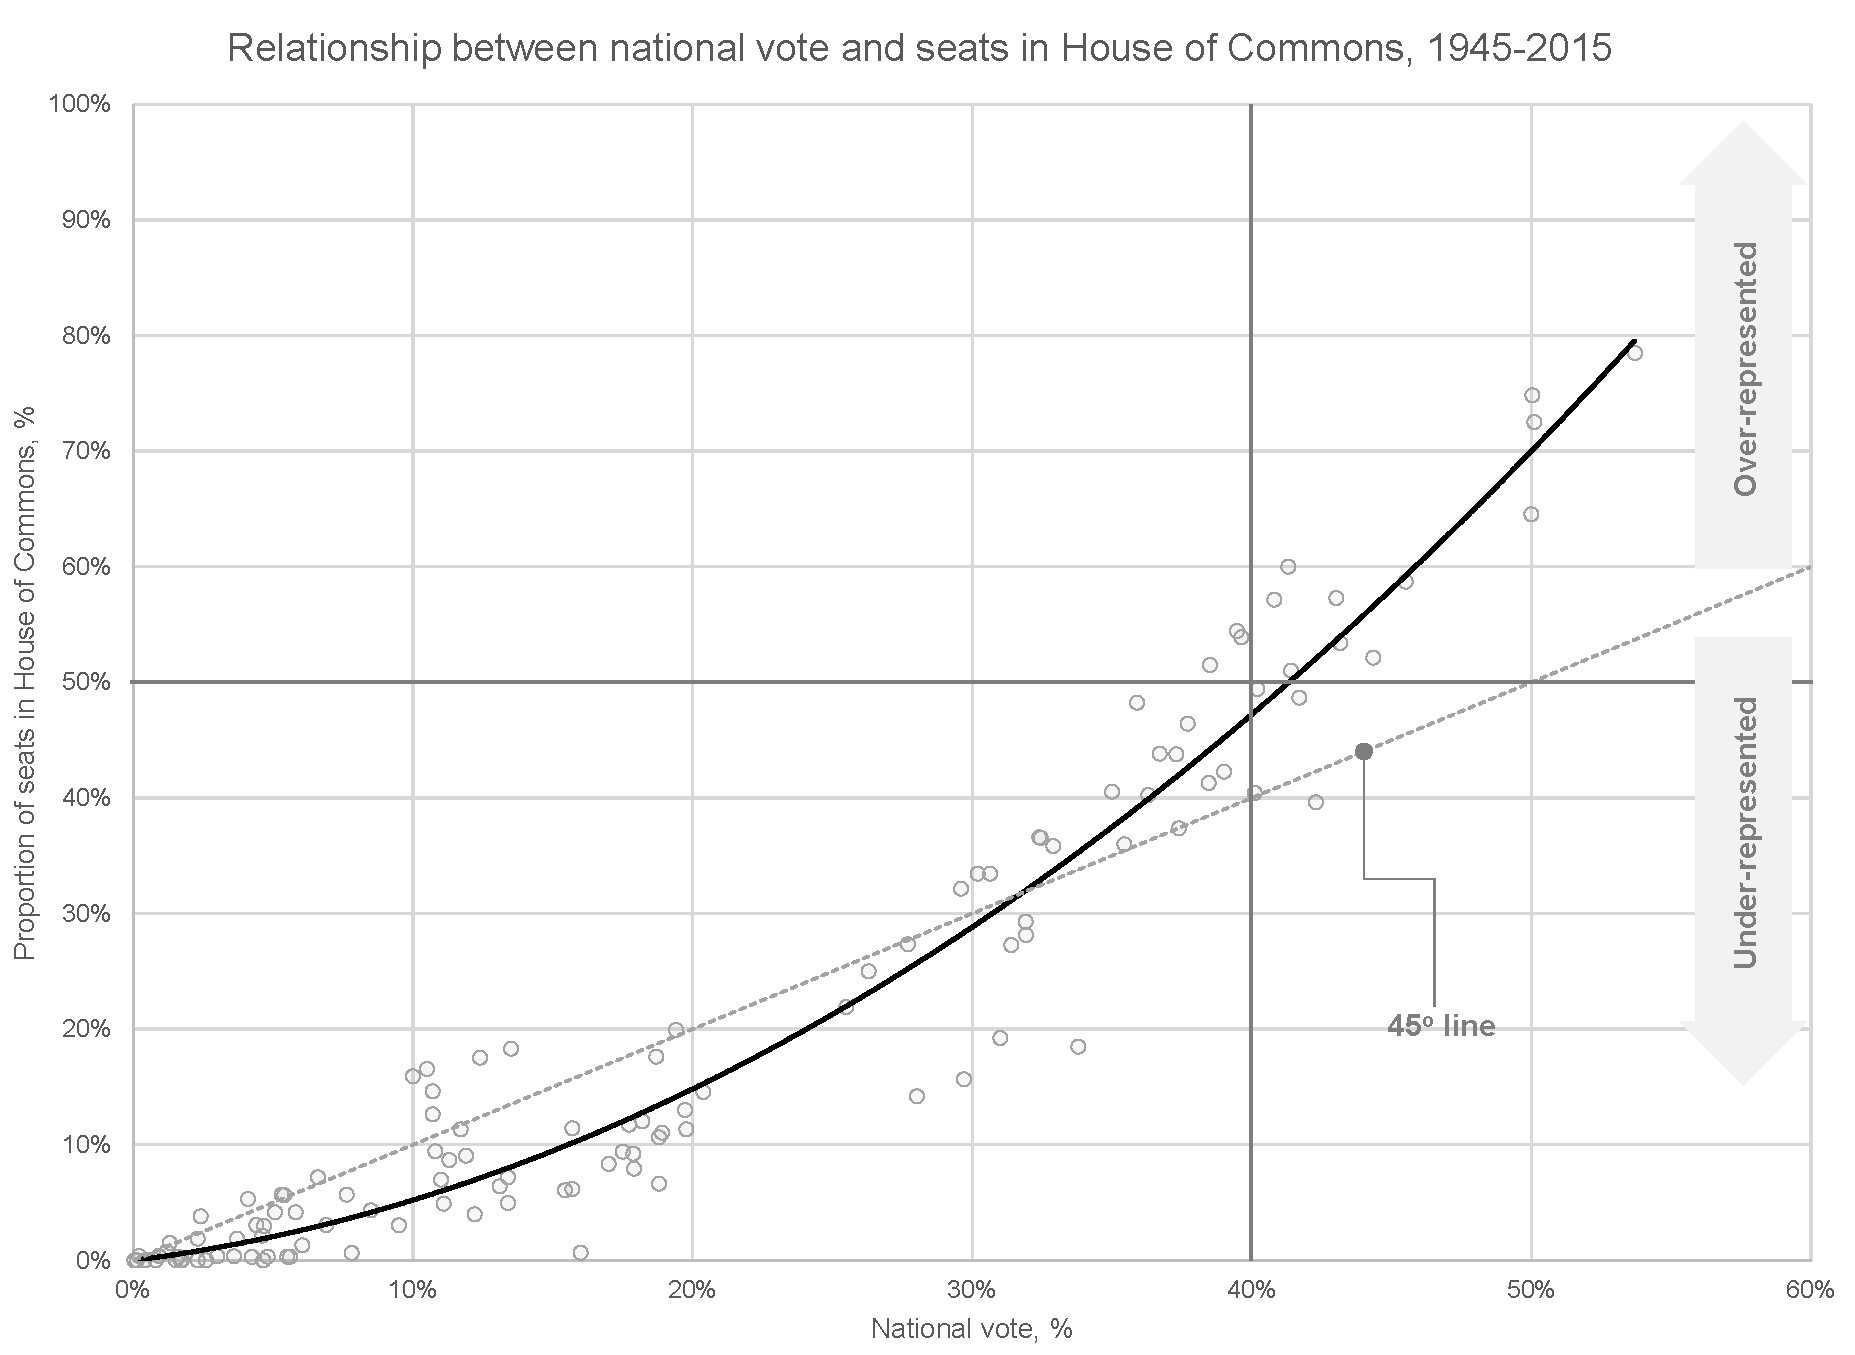 Each dot in this plot represents a single party's outcome in an election (e.g., in 2015, the Conservative Party won 32% of the national vote and got 29% of the seats in the HoC).  This plot shows that the relationship between the national vote and seats in the HoC is convex: smaller parties are under-represented, while larger ones are over-represented.  This attribute makes it easier to form majority governments since a party can win 50% of the seats with fewer than 50% of the votes.